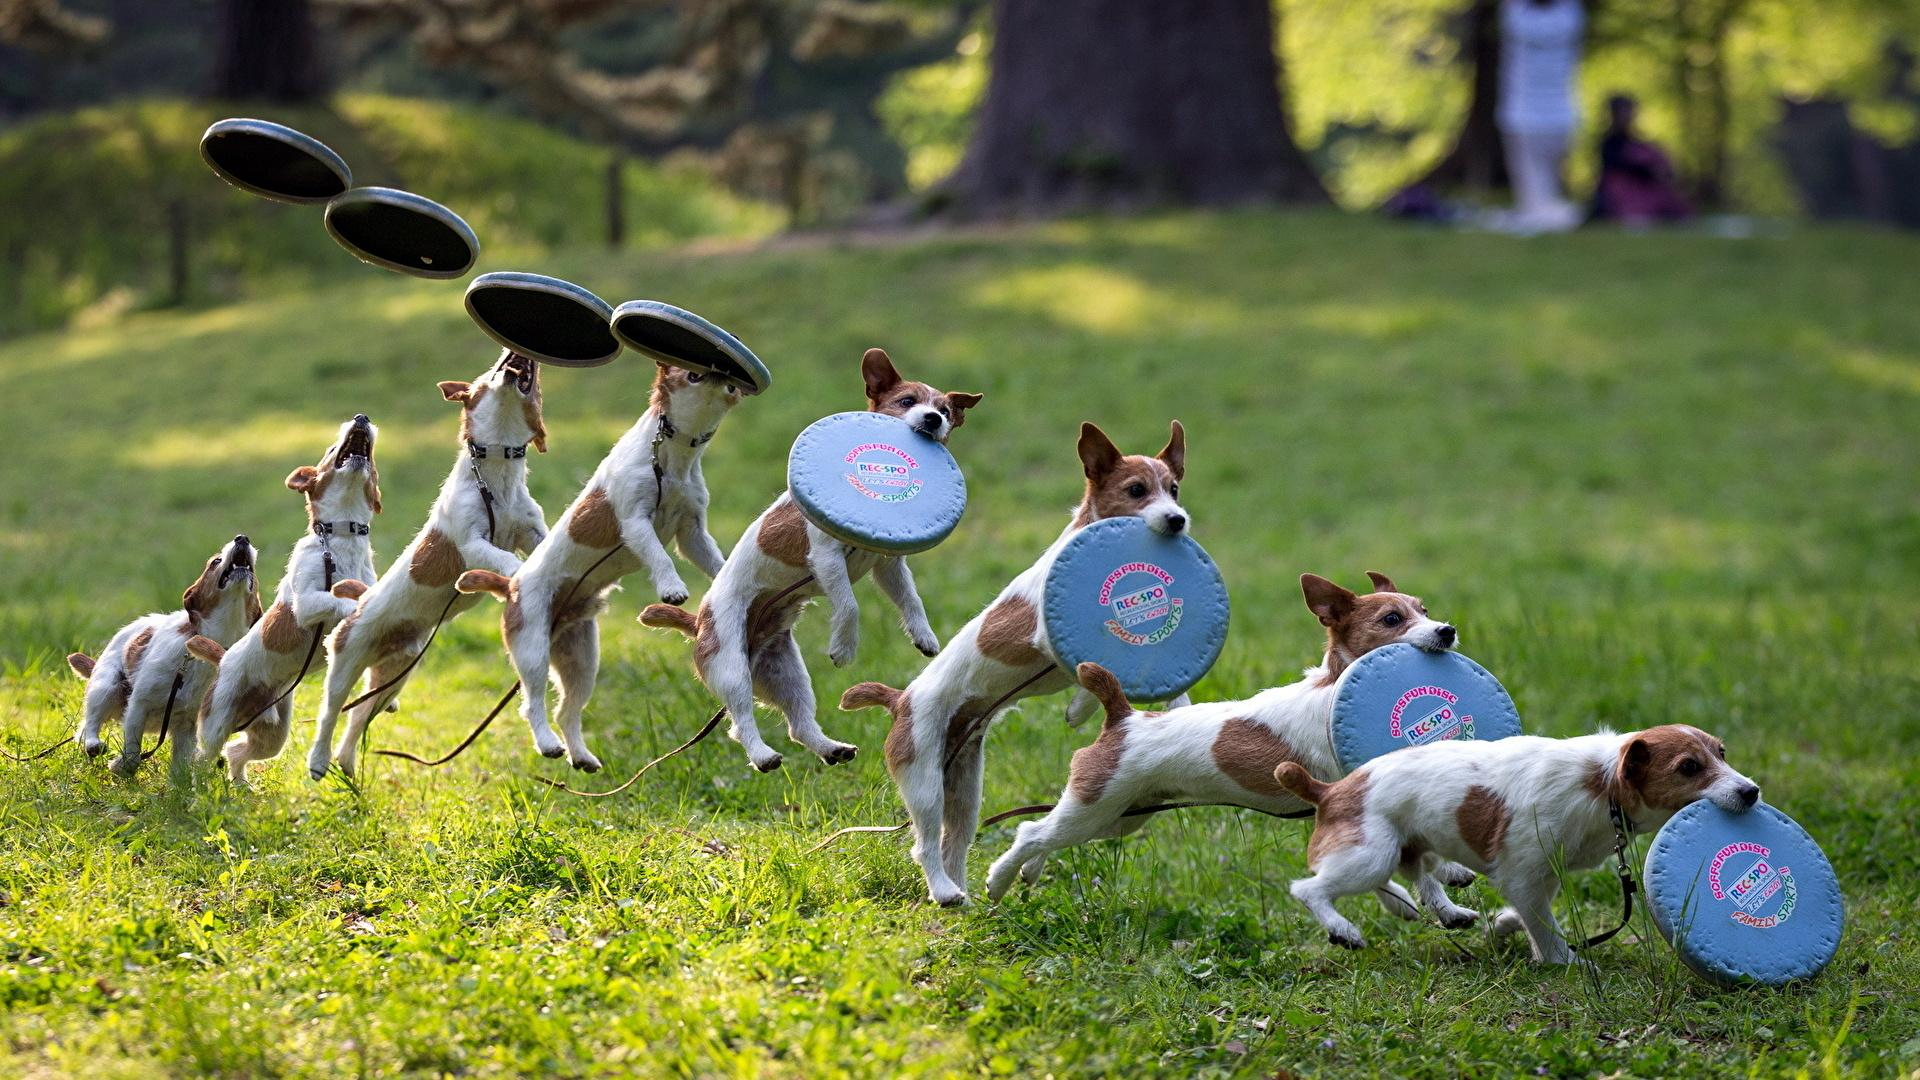 Photo Dogs Frisbee Grass Animals 1920x1080